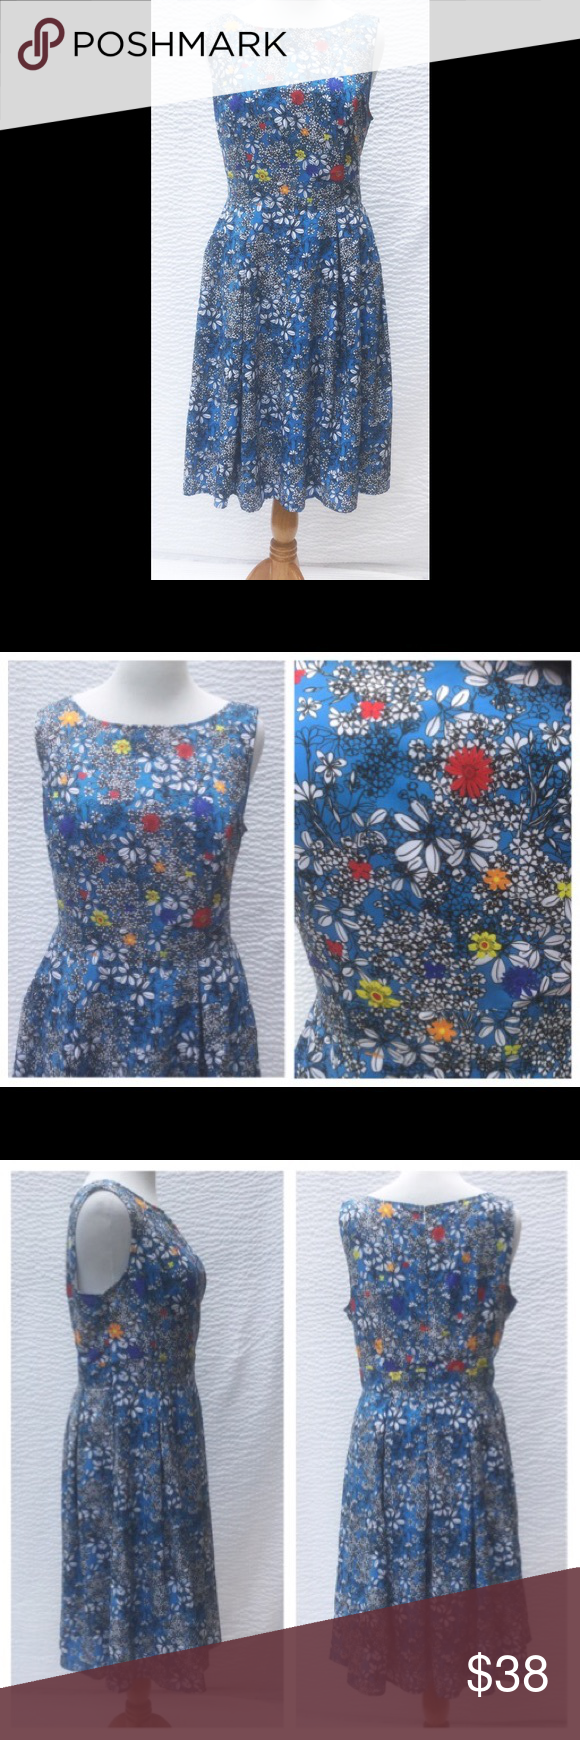 """New Eshakti Floral Crepe Fit & Flare Dress 20W New Eshakti floral print fit & flare crepe dress. Size 20W Measured flat: Underarm to underarm: 44"""" Waist: 41"""" Length: 44 ½"""" Eshakti size chart for 20W bust: 47"""" Princess seamed bodice, back hidden zipper w/ hook & eye closure. Banded waist, flared midi skirt, side seam pockets. Lined in polyester moss crepe. Polyester, woven crepe, no stretch. Machine wash. New w/ cut out Eshakti tag to prevent returning. eshakti Dresses Midi"""